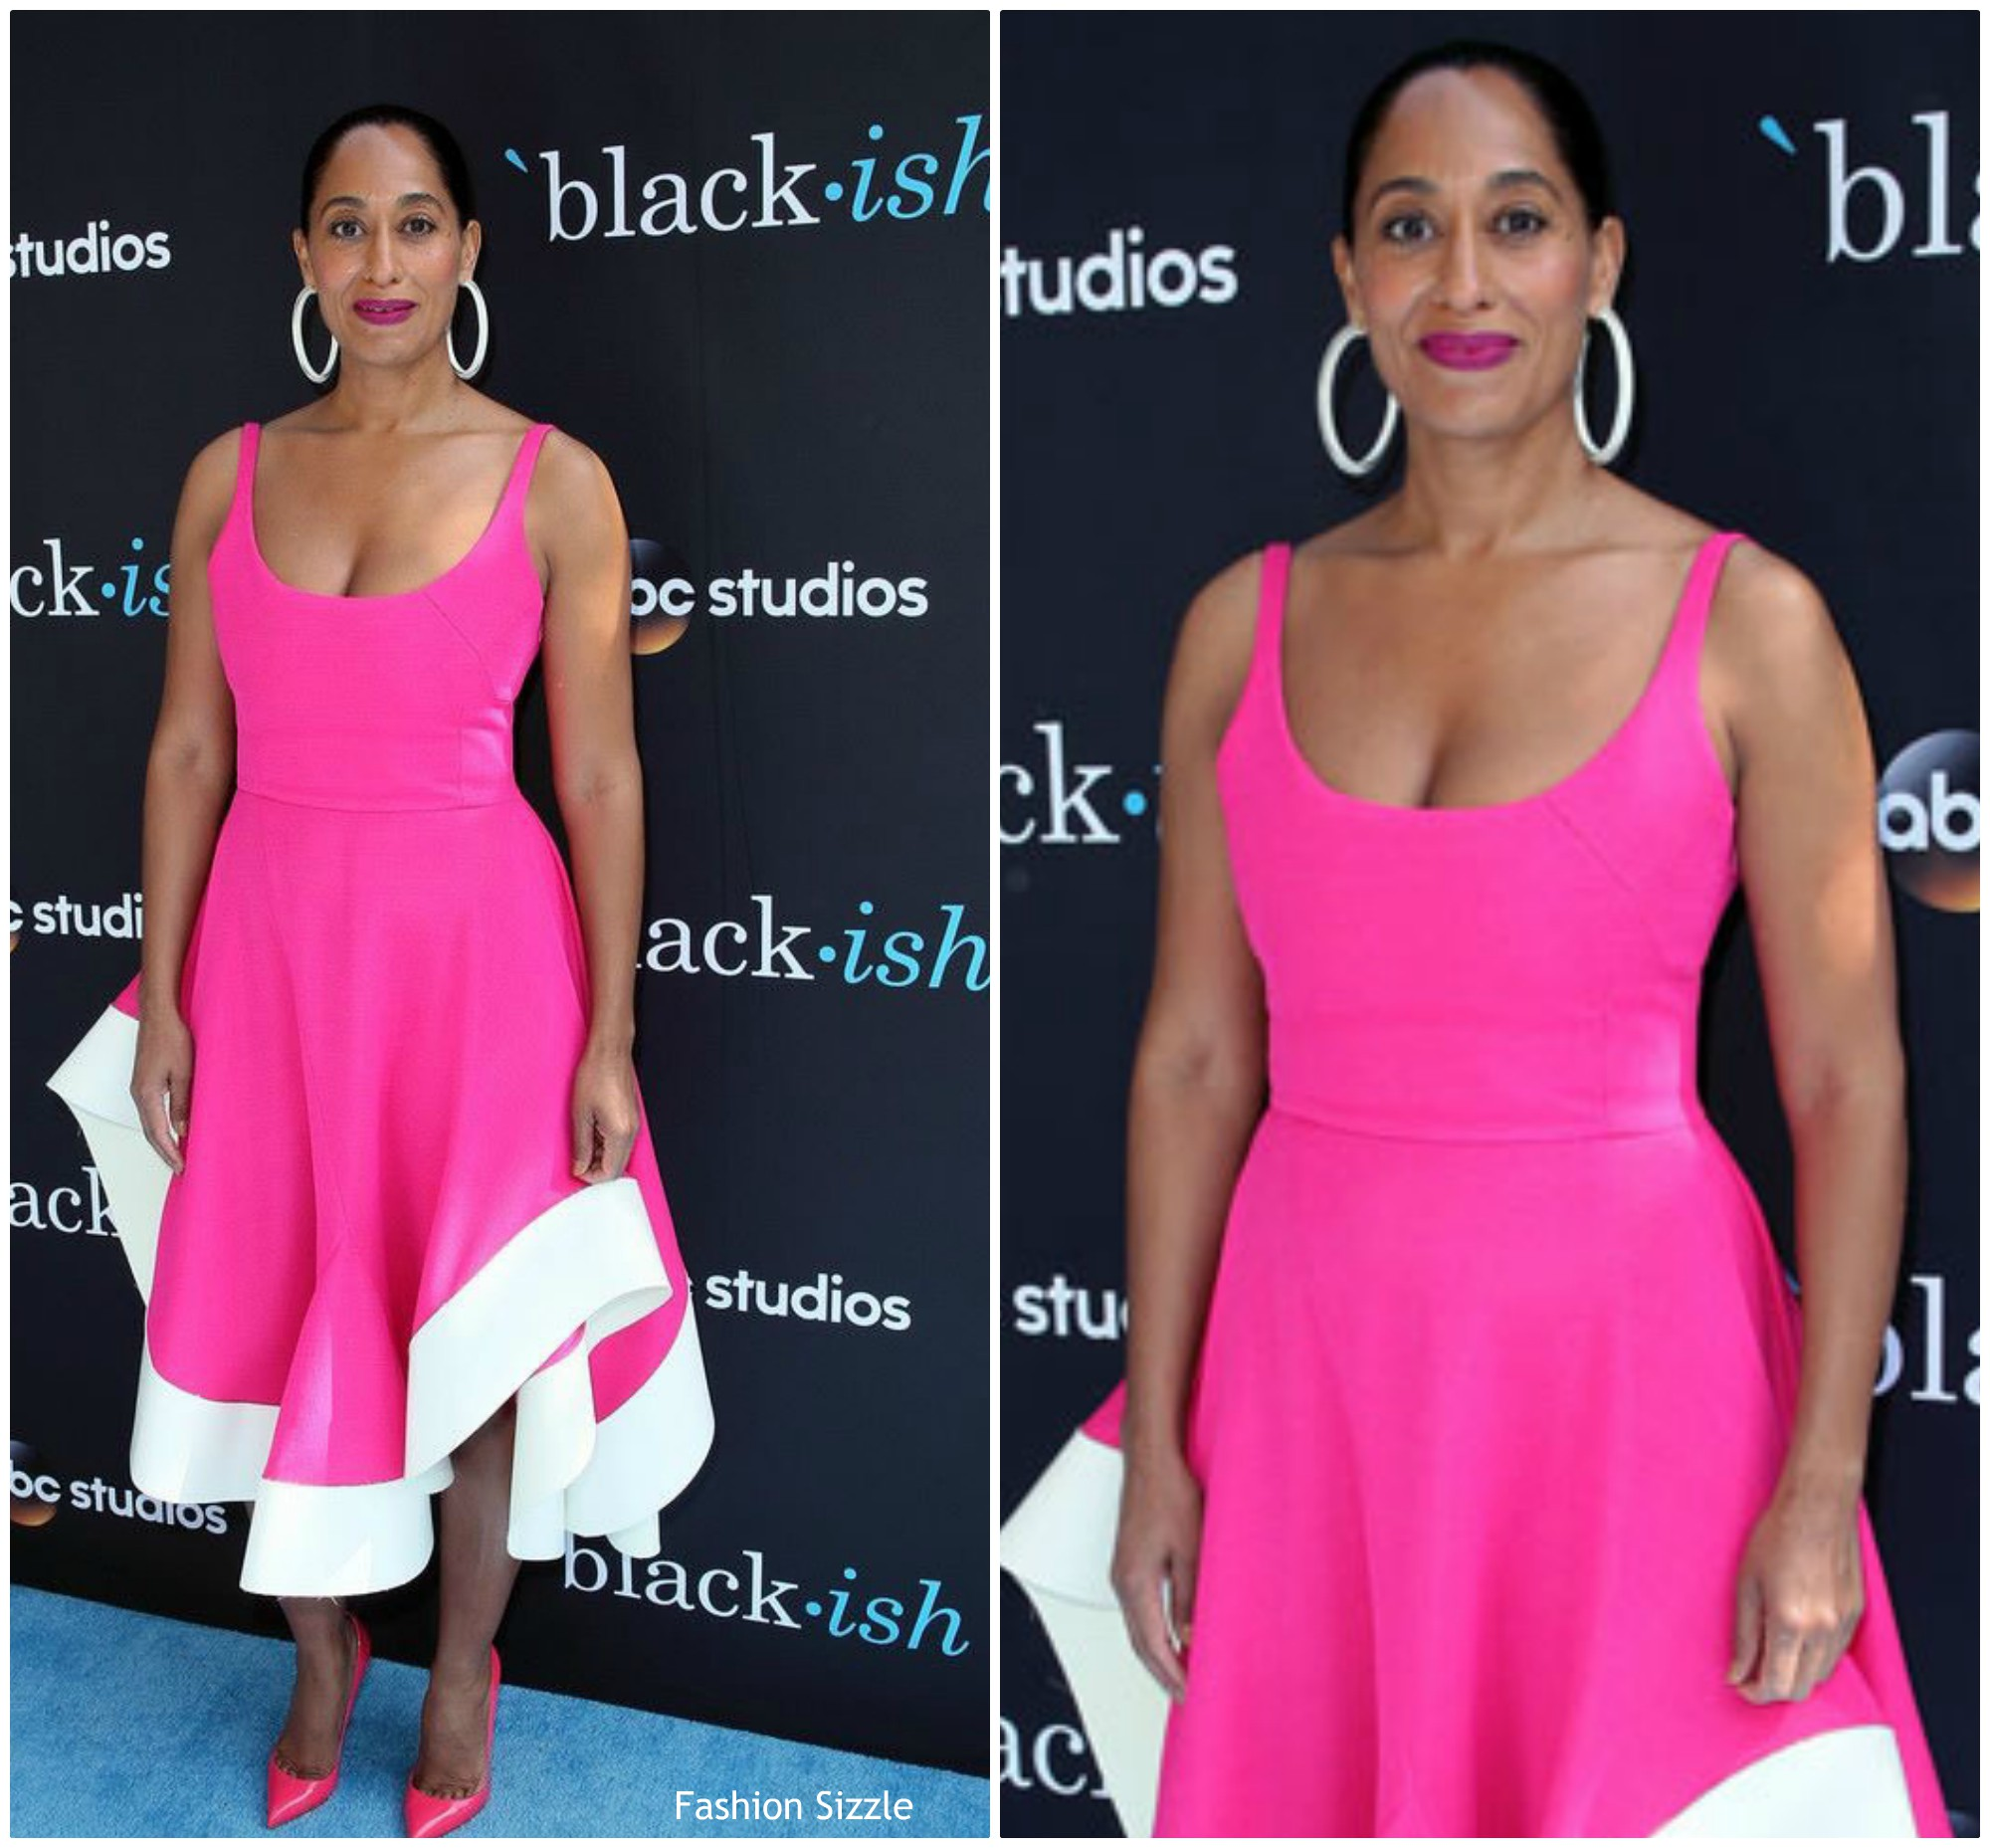 tracee-ellis-ross-in-esteban-cortazar-fyc-event-for-abcs-blackish